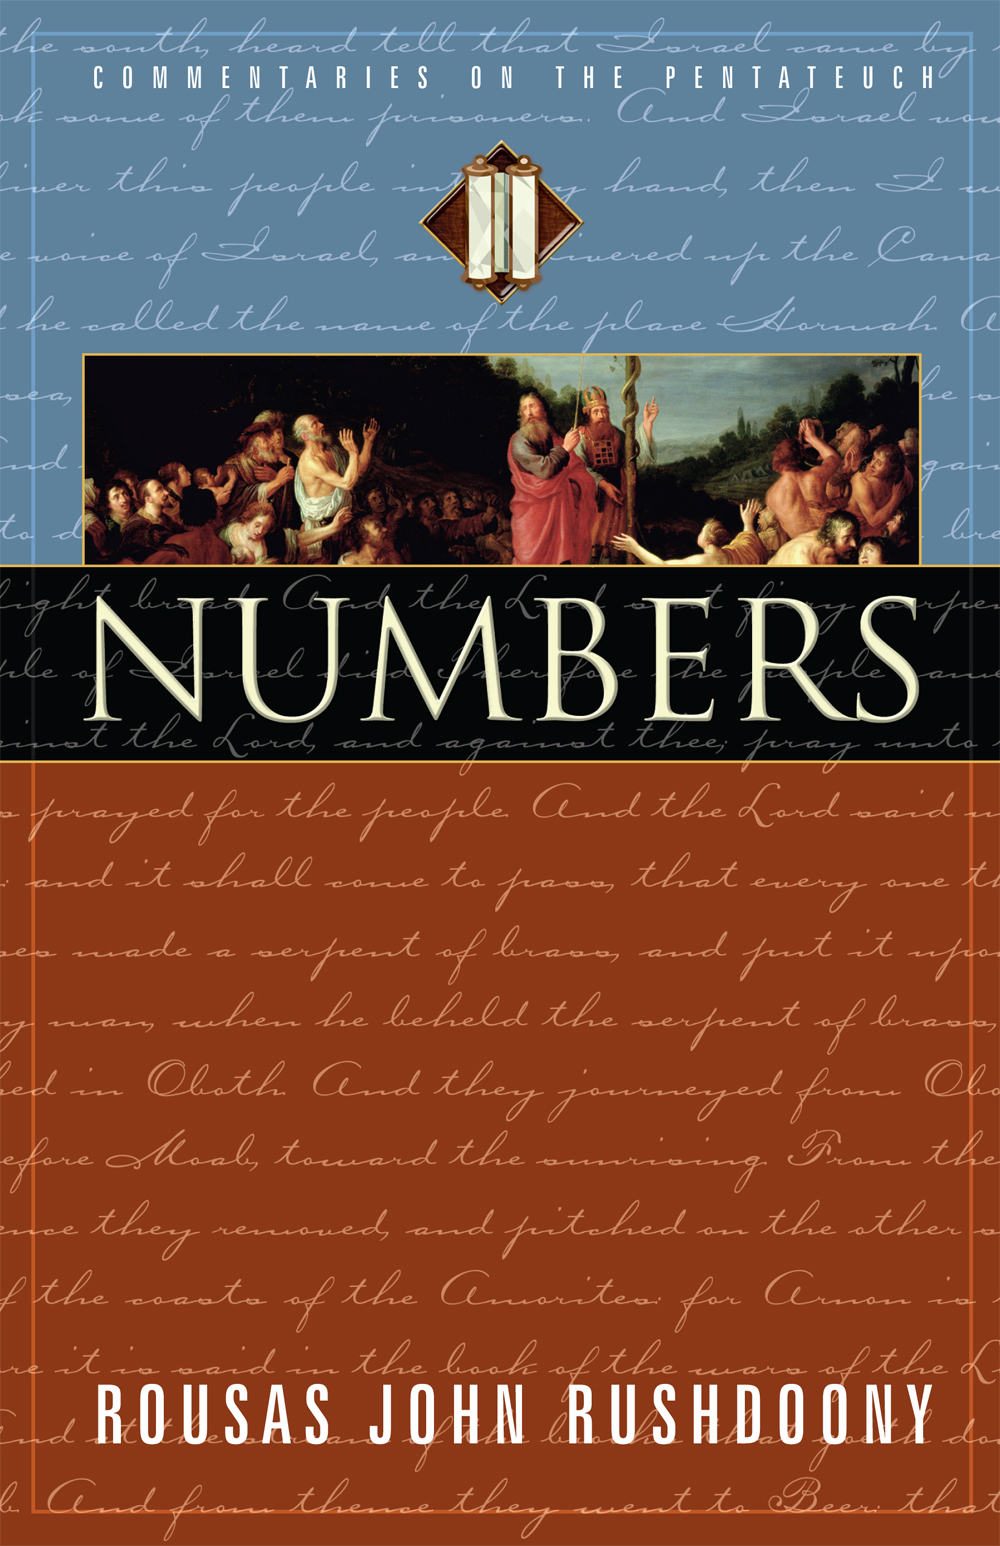 Numbers: Volume IV of Commentaries on the Pentateuch